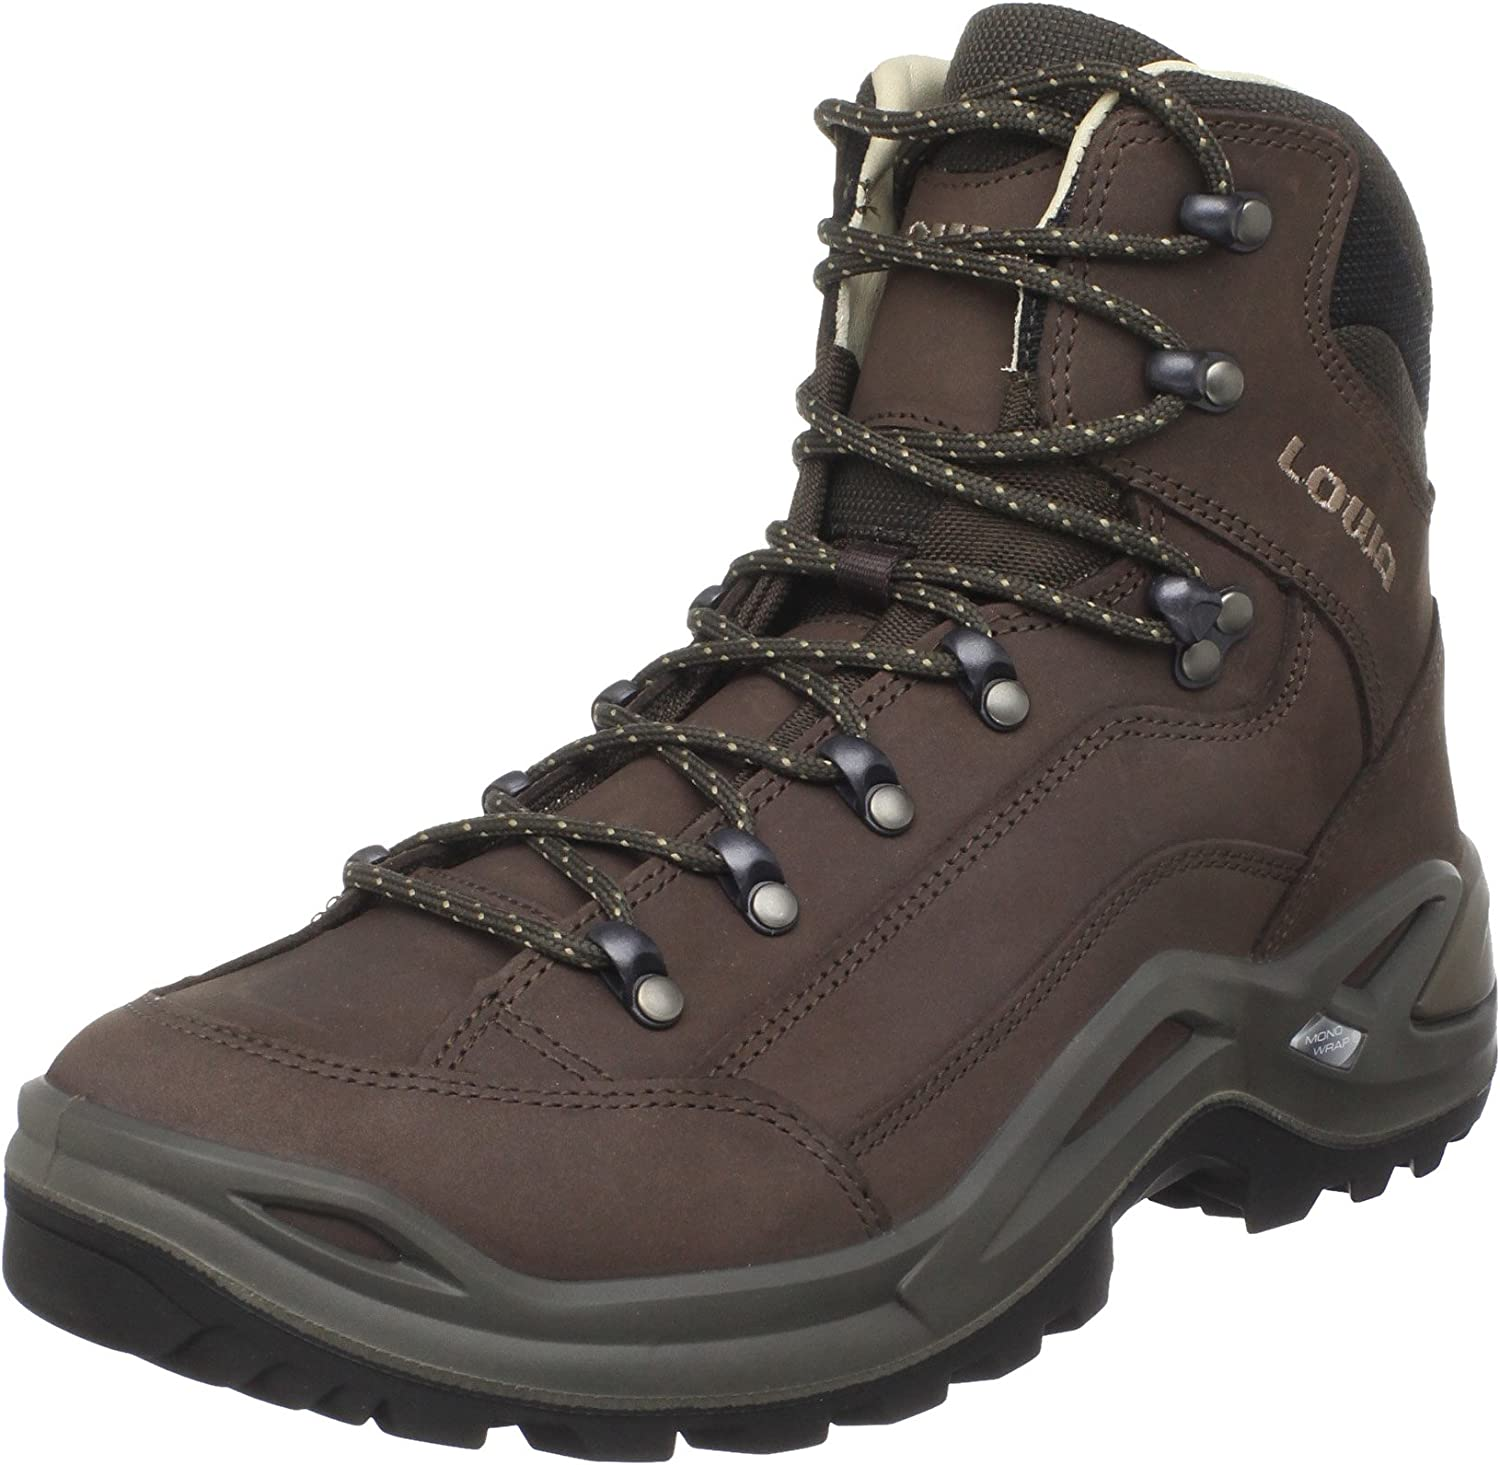 Lowa Men s Renegade II Leather-Lined Mid Hiking Boot